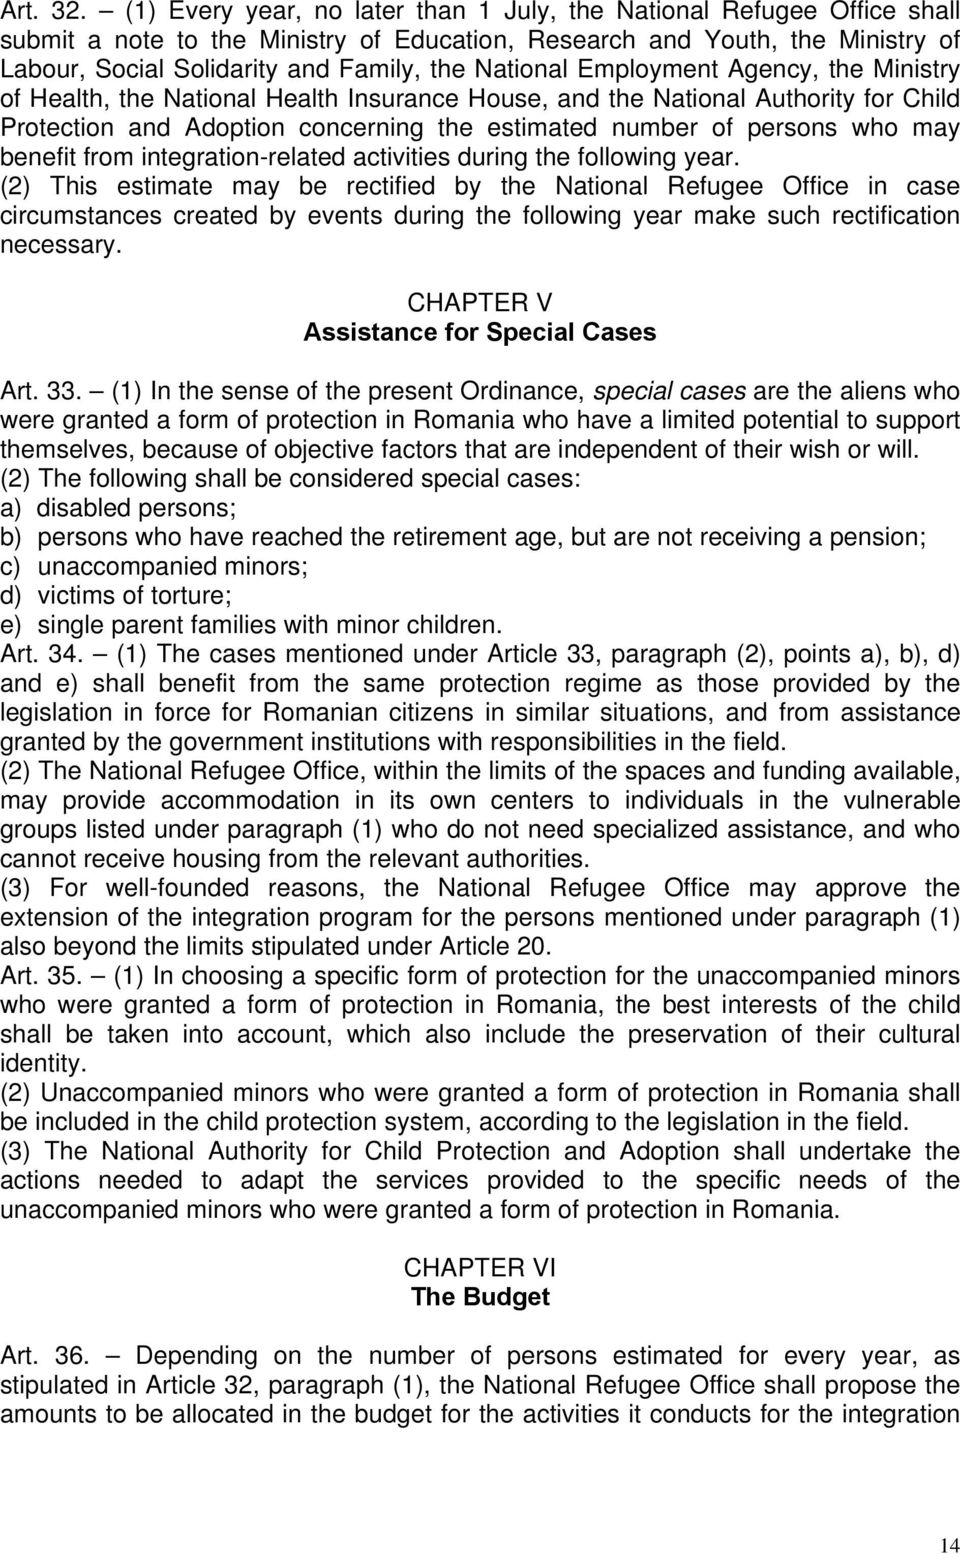 National Employment Agency, the Ministry of Health, the National Health Insurance House, and the National Authority for Child Protection and Adoption concerning the estimated number of persons who